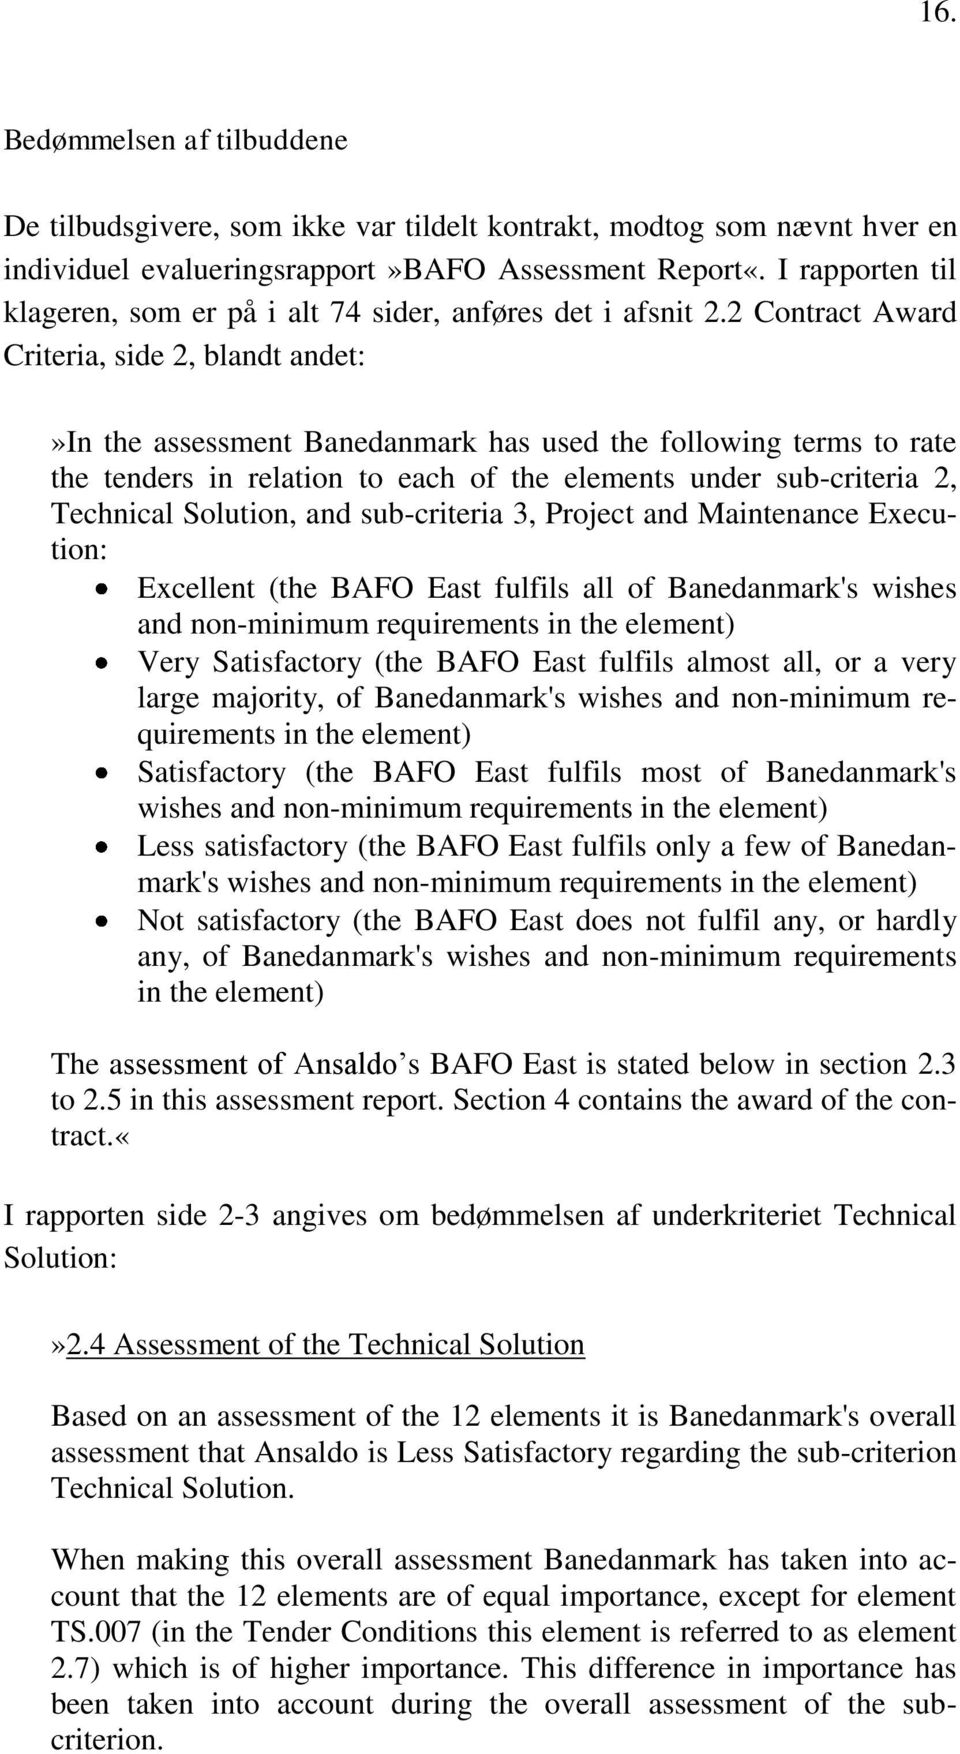 2 Contract Award Criteria, side 2, blandt andet:»in the assessment Banedanmark has used the following terms to rate the tenders in relation to each of the elements under sub-criteria 2, Technical